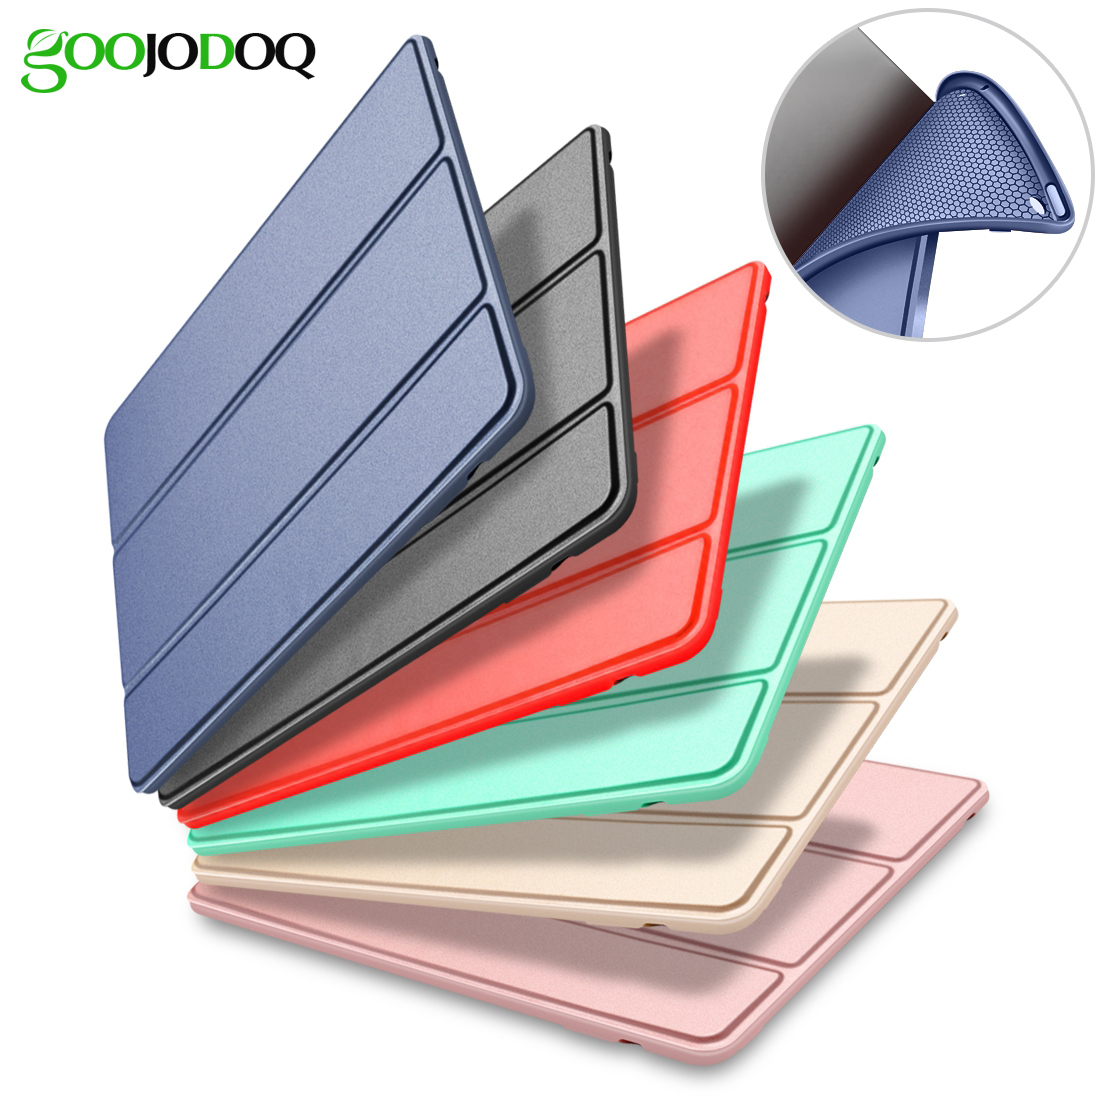 Case for iPad 2 3 4 Case Silicone Soft Back Folio Stand with Auto Sleep/Wake Up PU Leather Smart Cover for iPad 3 4 2 Case slim case for apple ipad air air2 ipad 5 6 smart cover cowboy pu leather soft silicone folio stand protective shell film pen